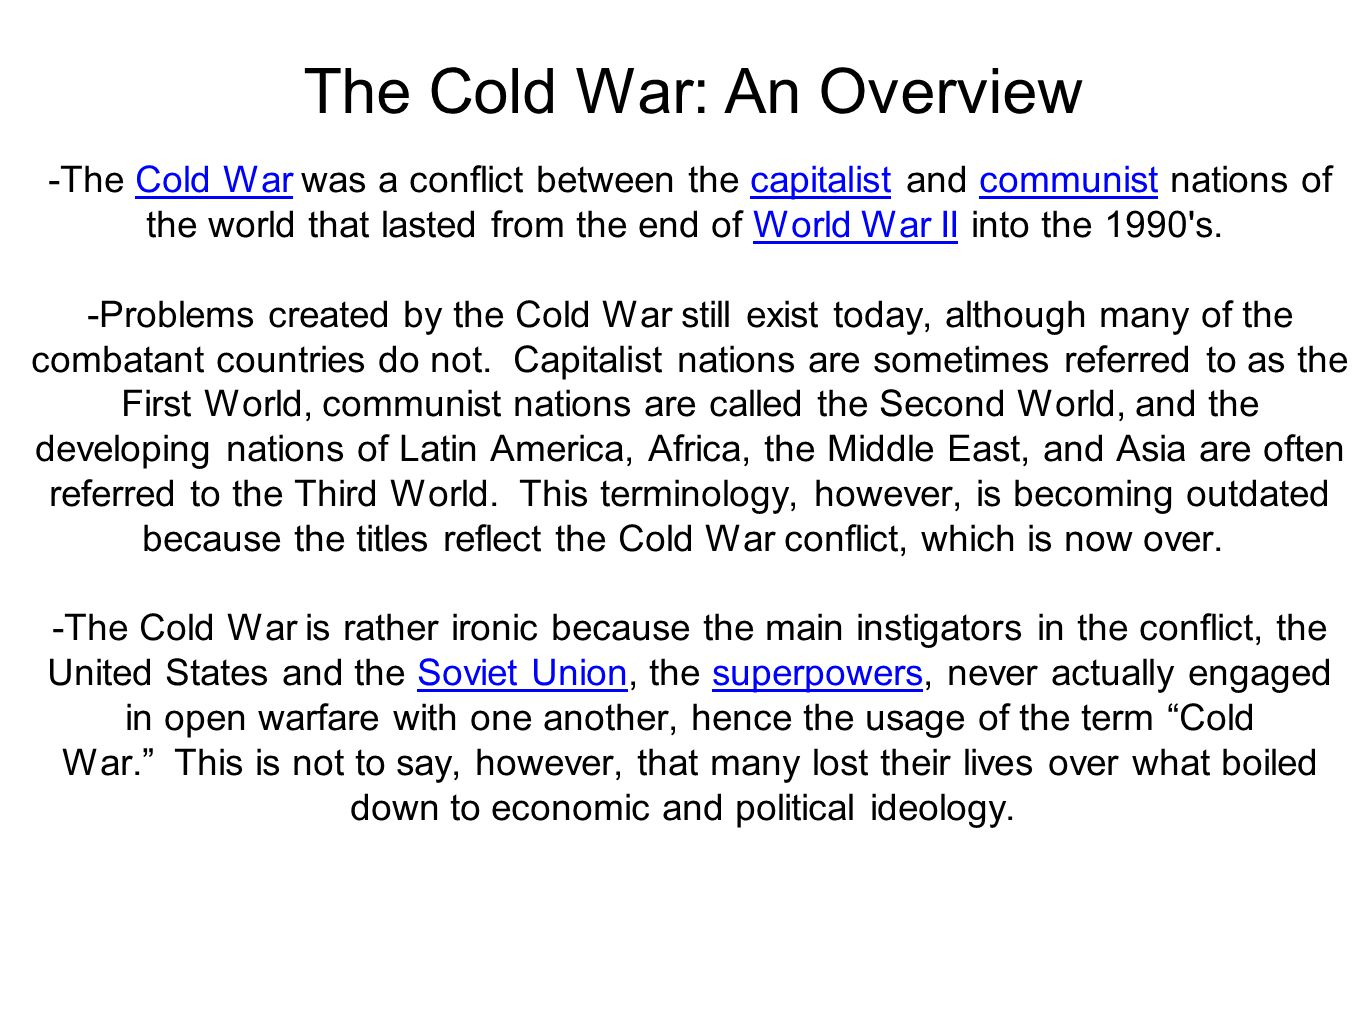 the cold war and ideological differences between the east and the west